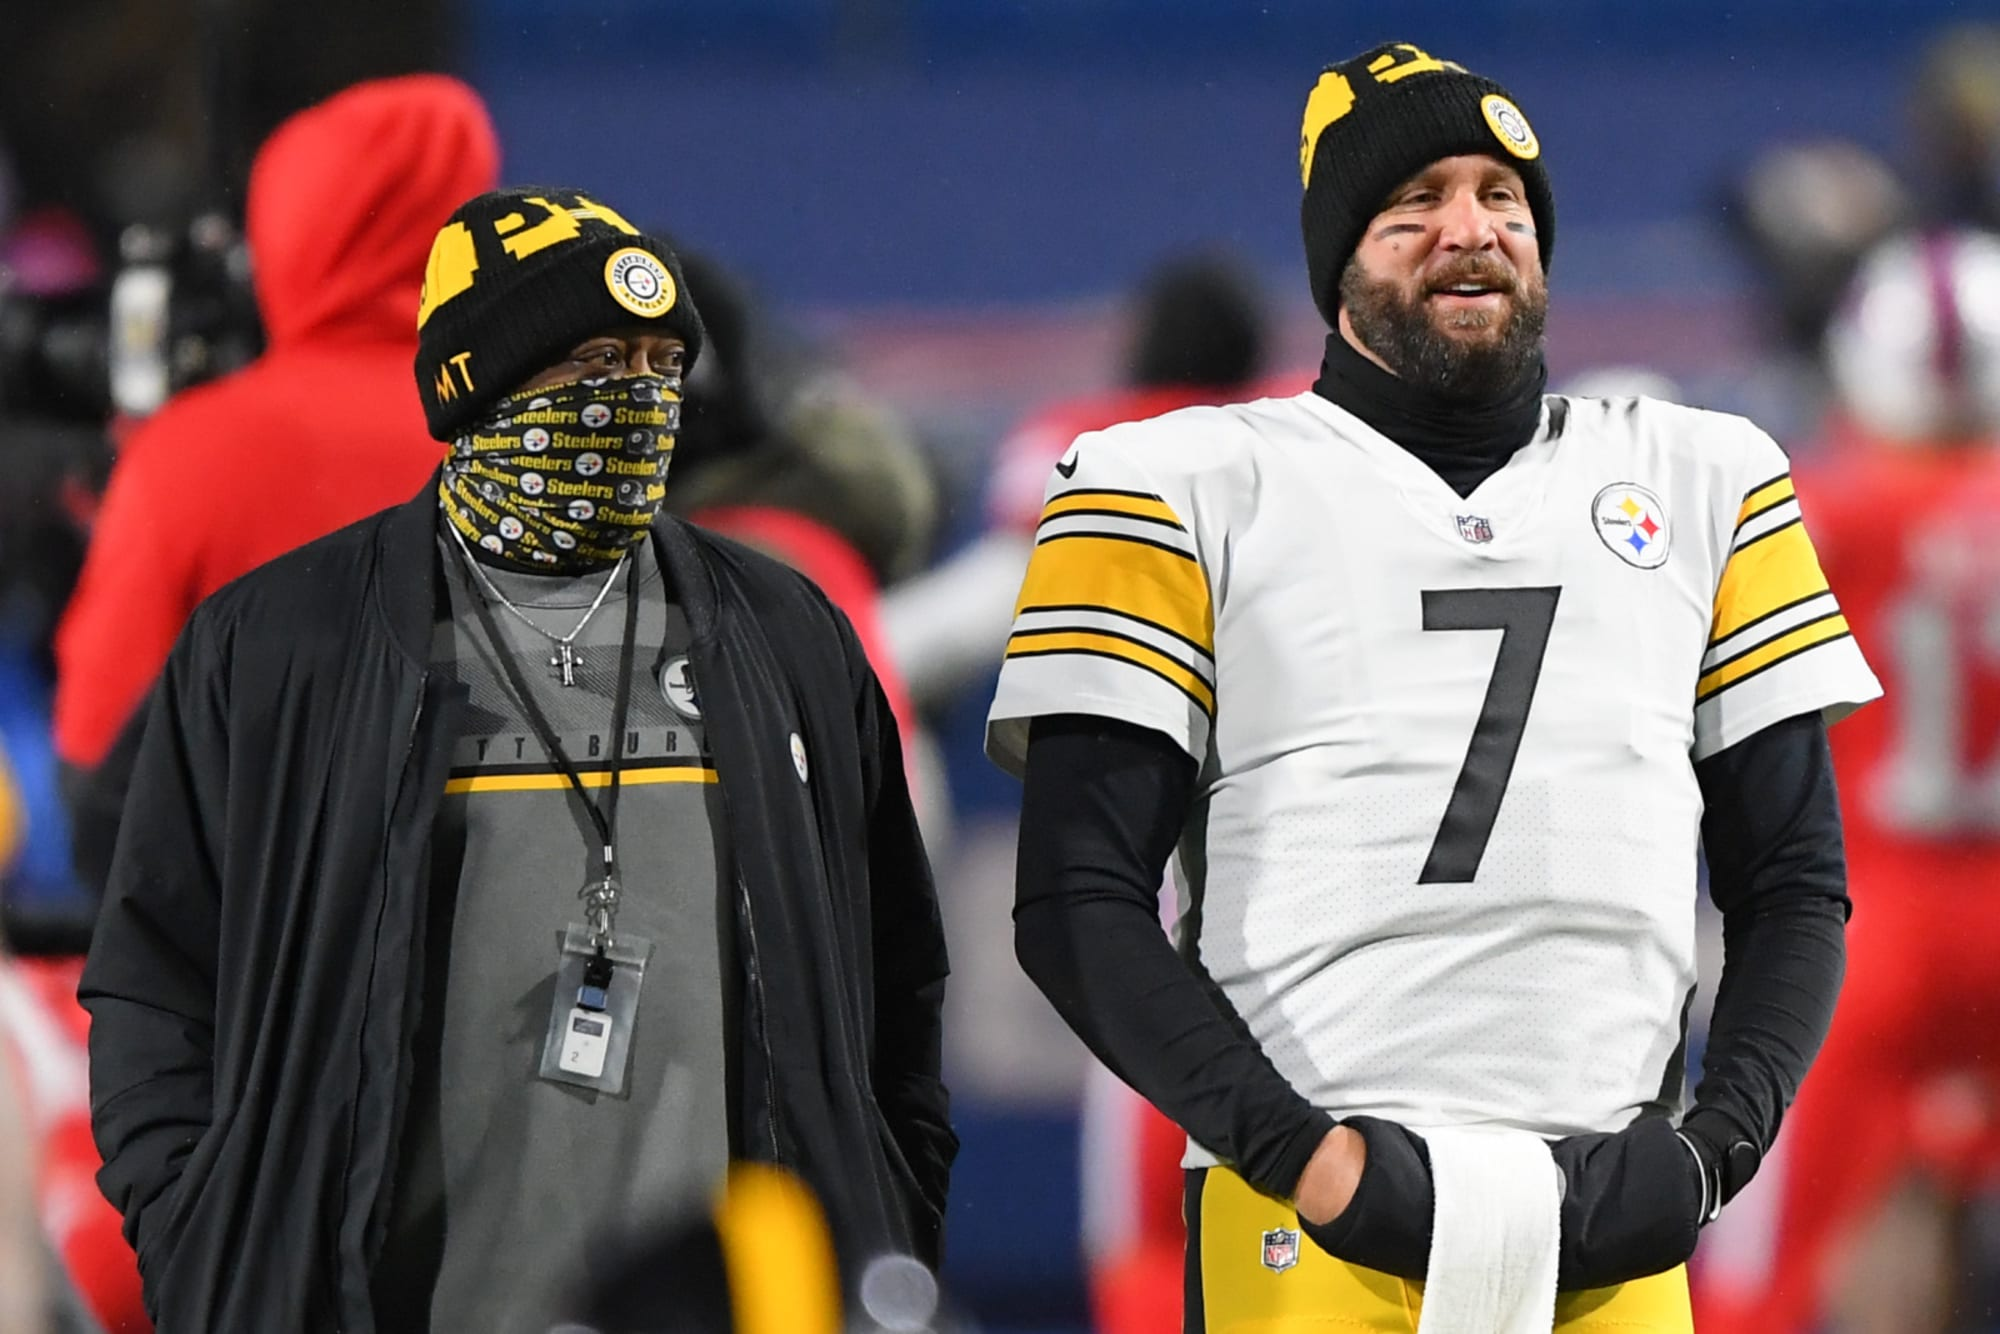 Way-too-early projected win totals for Steelers in 2021